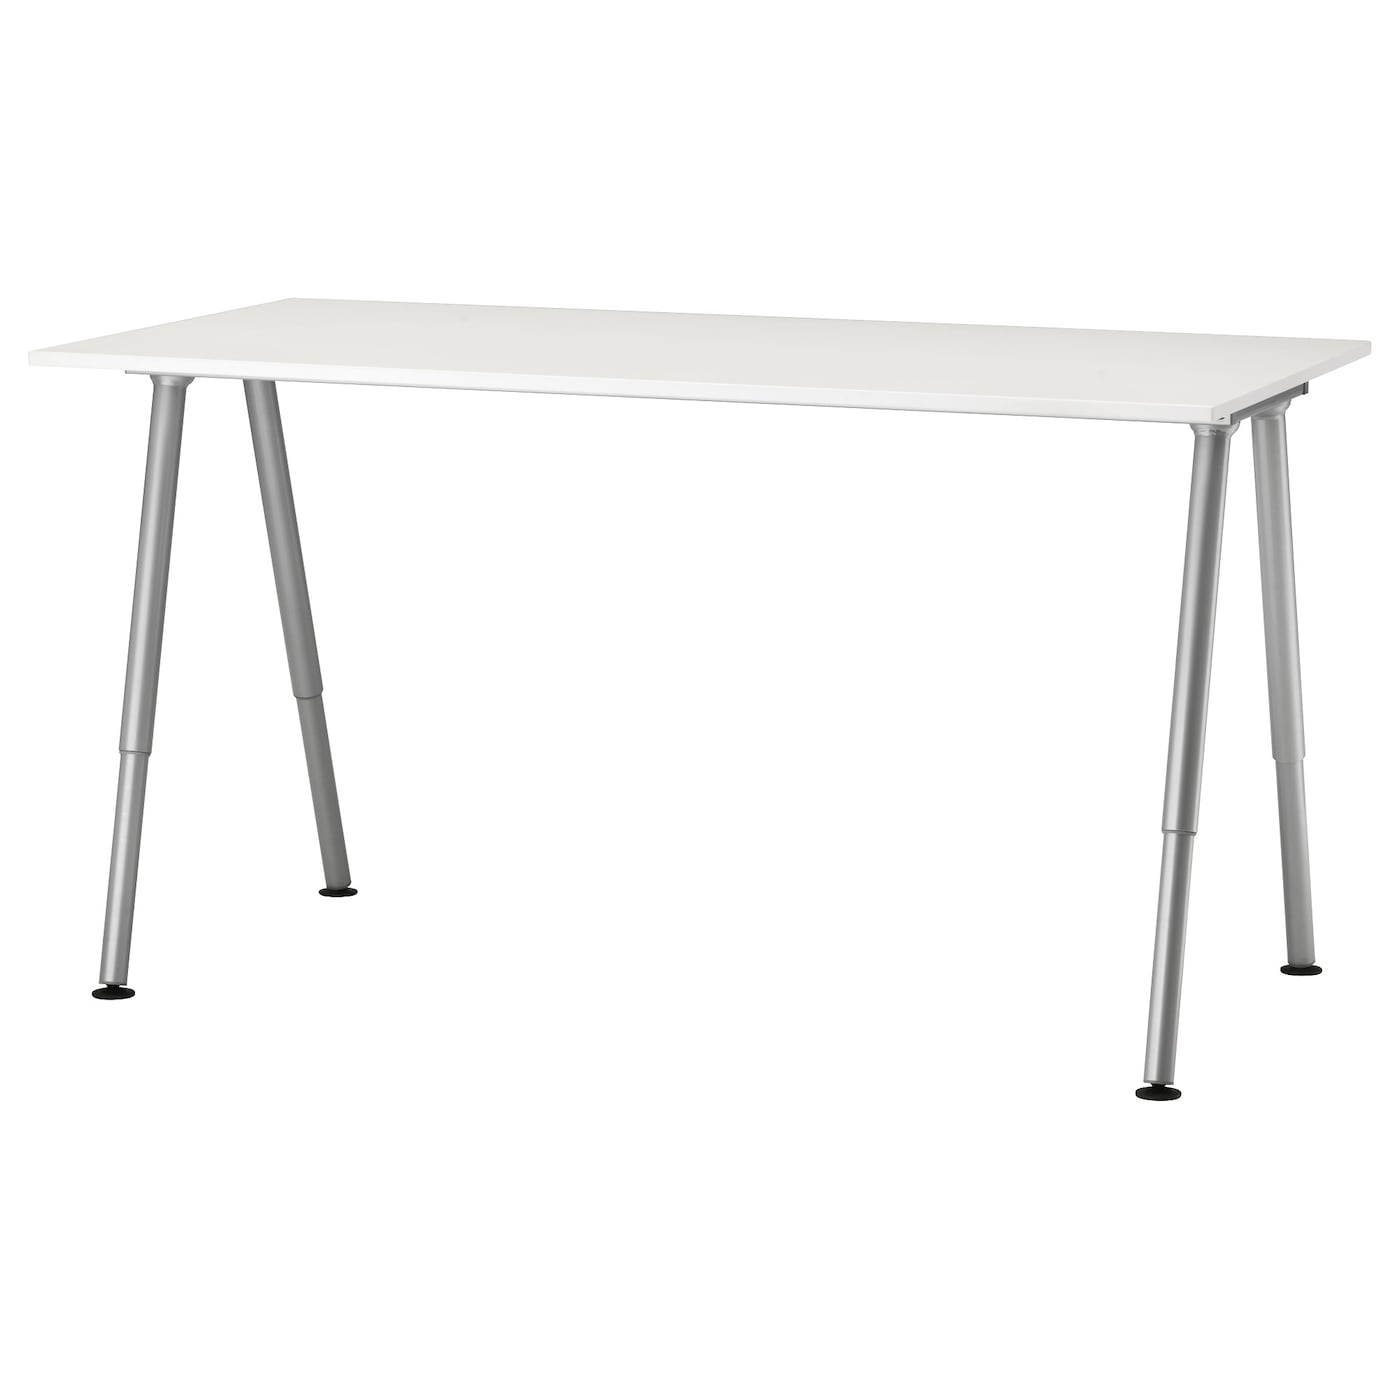 Thyge desk white silver colour 160x80 cm ikea - Glass office desk ikea ...